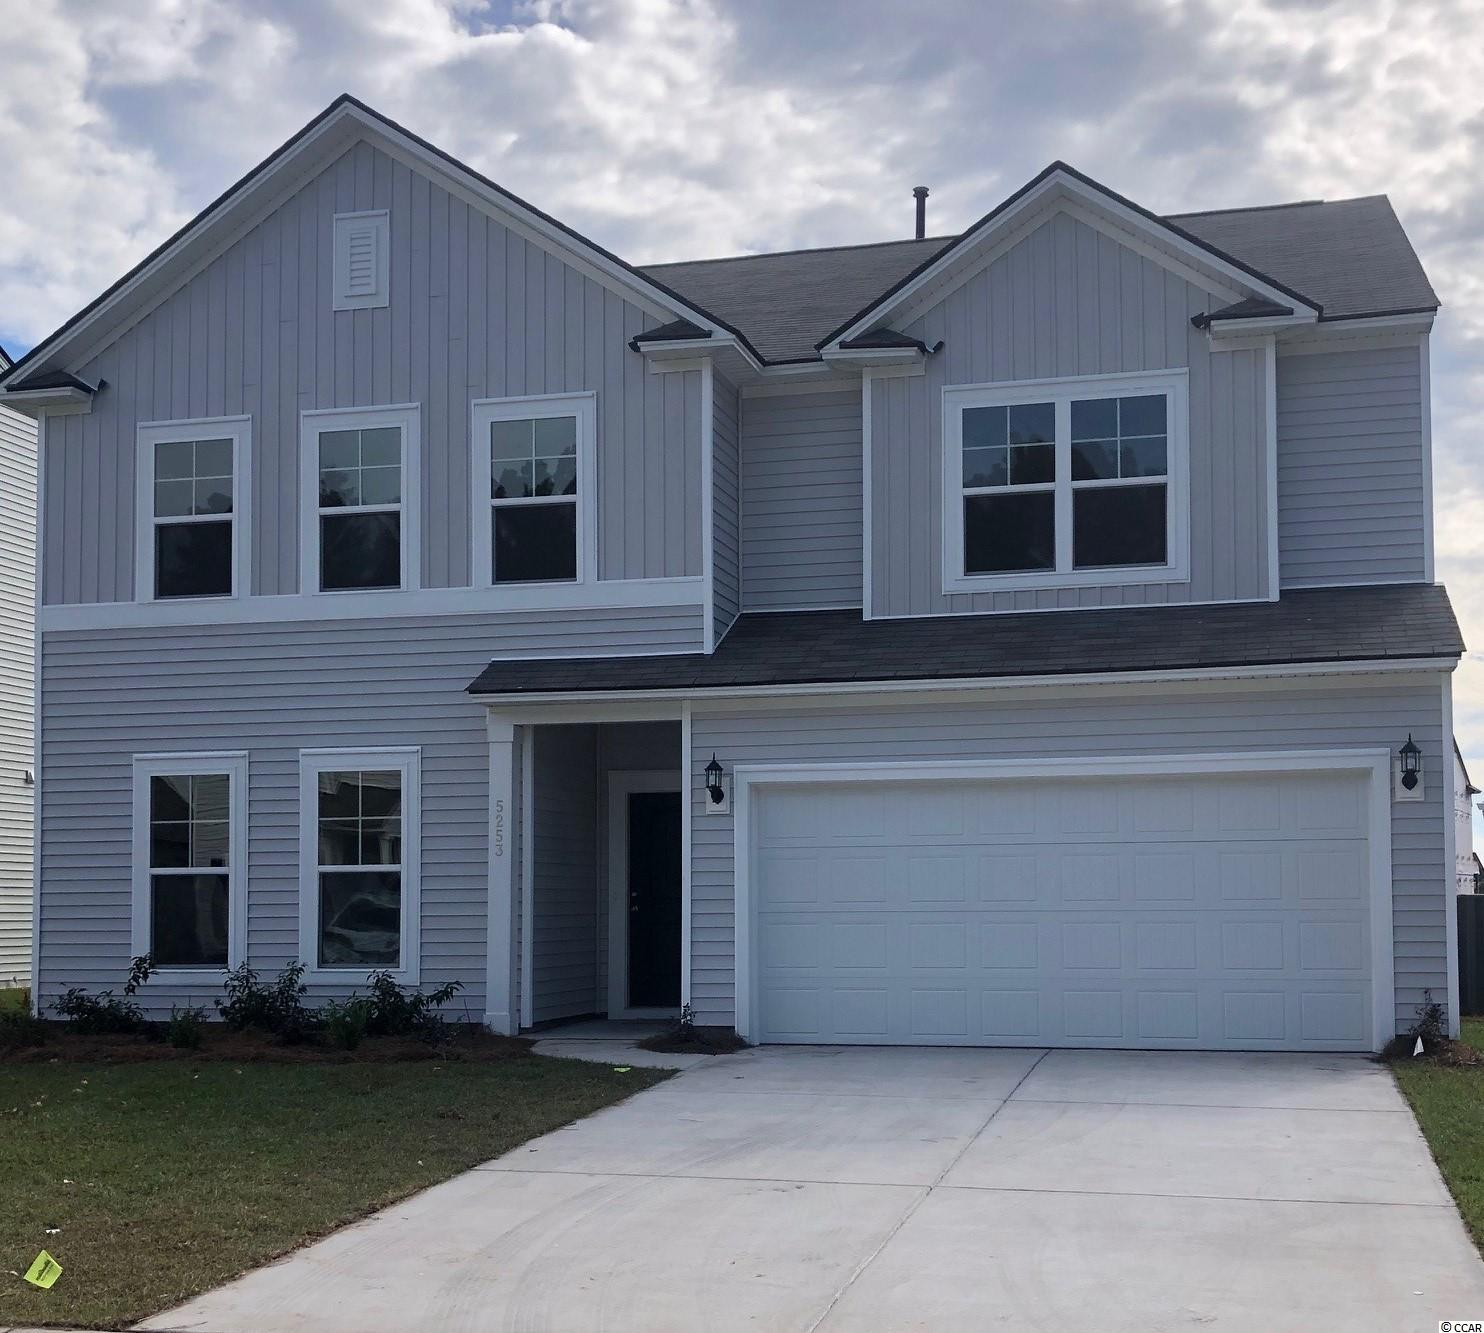 """The Mitchell plan offers a fantastic sized home for the price! The layout for this particular home is 4BR / 2.5BA + Game Room / Loft (@2956 sq ft). You'll love the large Owner's Suite with a bedroom-sized closet. Double vanity, large linen closet, and tiled shower + garden tub in Owner's Bath. This open kitchen has ample cabinet space, a roomy corner pantry, and the 9'6"""" granite island is idyllic! Additional features are staggered cabinet design, stainless steel appliances, and recessed LED lights.  Upstairs is the Owner's Suite, 3 large bedrooms, and an open game room/loft for additional living space. We include an exceptional 10yr Home Warranty with 5-year water infiltration and leak protection as well as great incentives for working with preferred lender. ...ask for details! This """"tucked away"""" section in Clear Pond offers a unique feel and natural setting...a great location within the community.  Completed Clear Pond amenities include 2 swimming pools, fitness center, playground, clubhouse, open green space, and walking paths. This community is conducive to biking, walking, and golf cart rides...a fantastic place to call home! Clear Pond community offers close proximity to everyday shopping, restaurants, recreation, and entertainment and is only 10 miles to the beach. Carolina Forest Schools.  Photos are of a model home for representational purposes only, and may show different options and upgrades selected."""